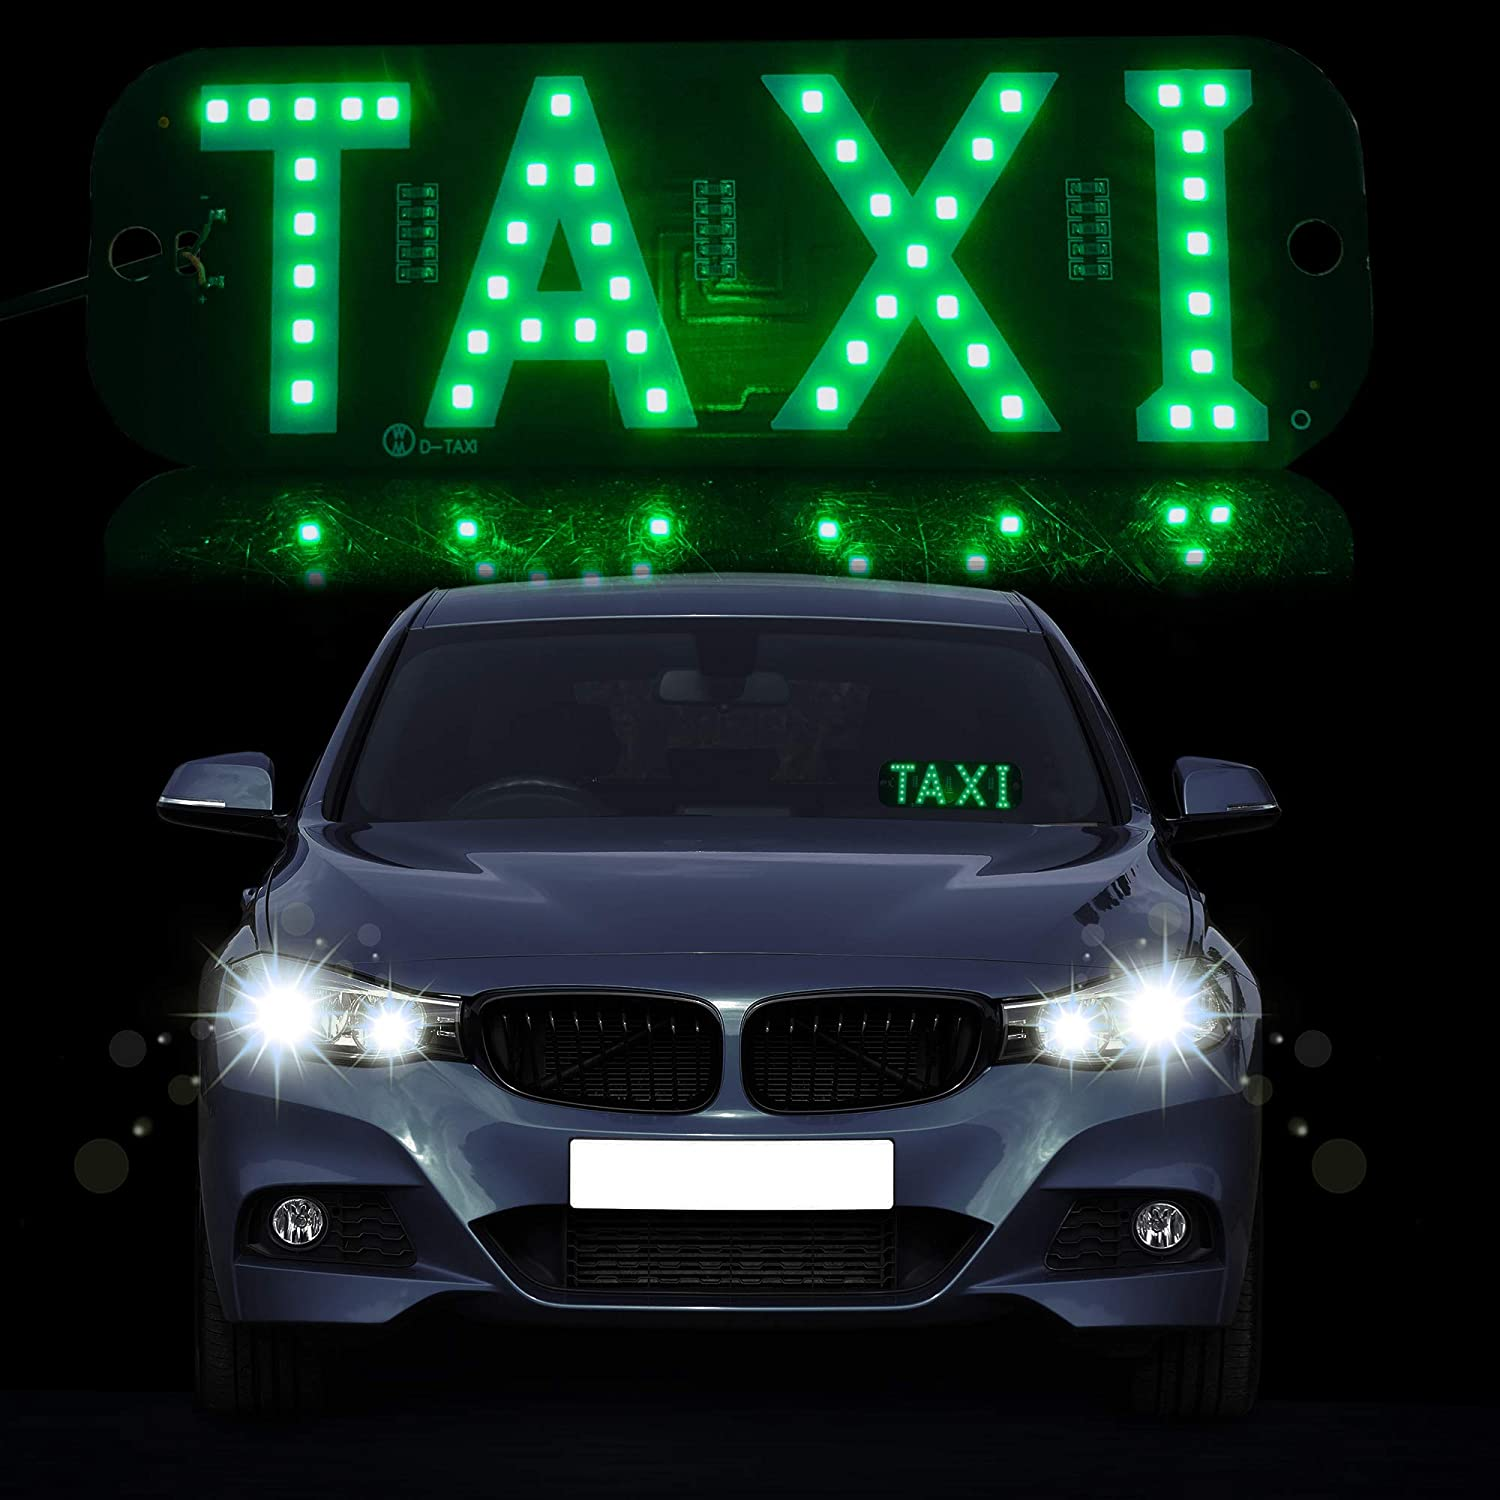 Welugnal Green LED Uber Sign Glow Uber Decor Accessories Removable Ride Share Decal